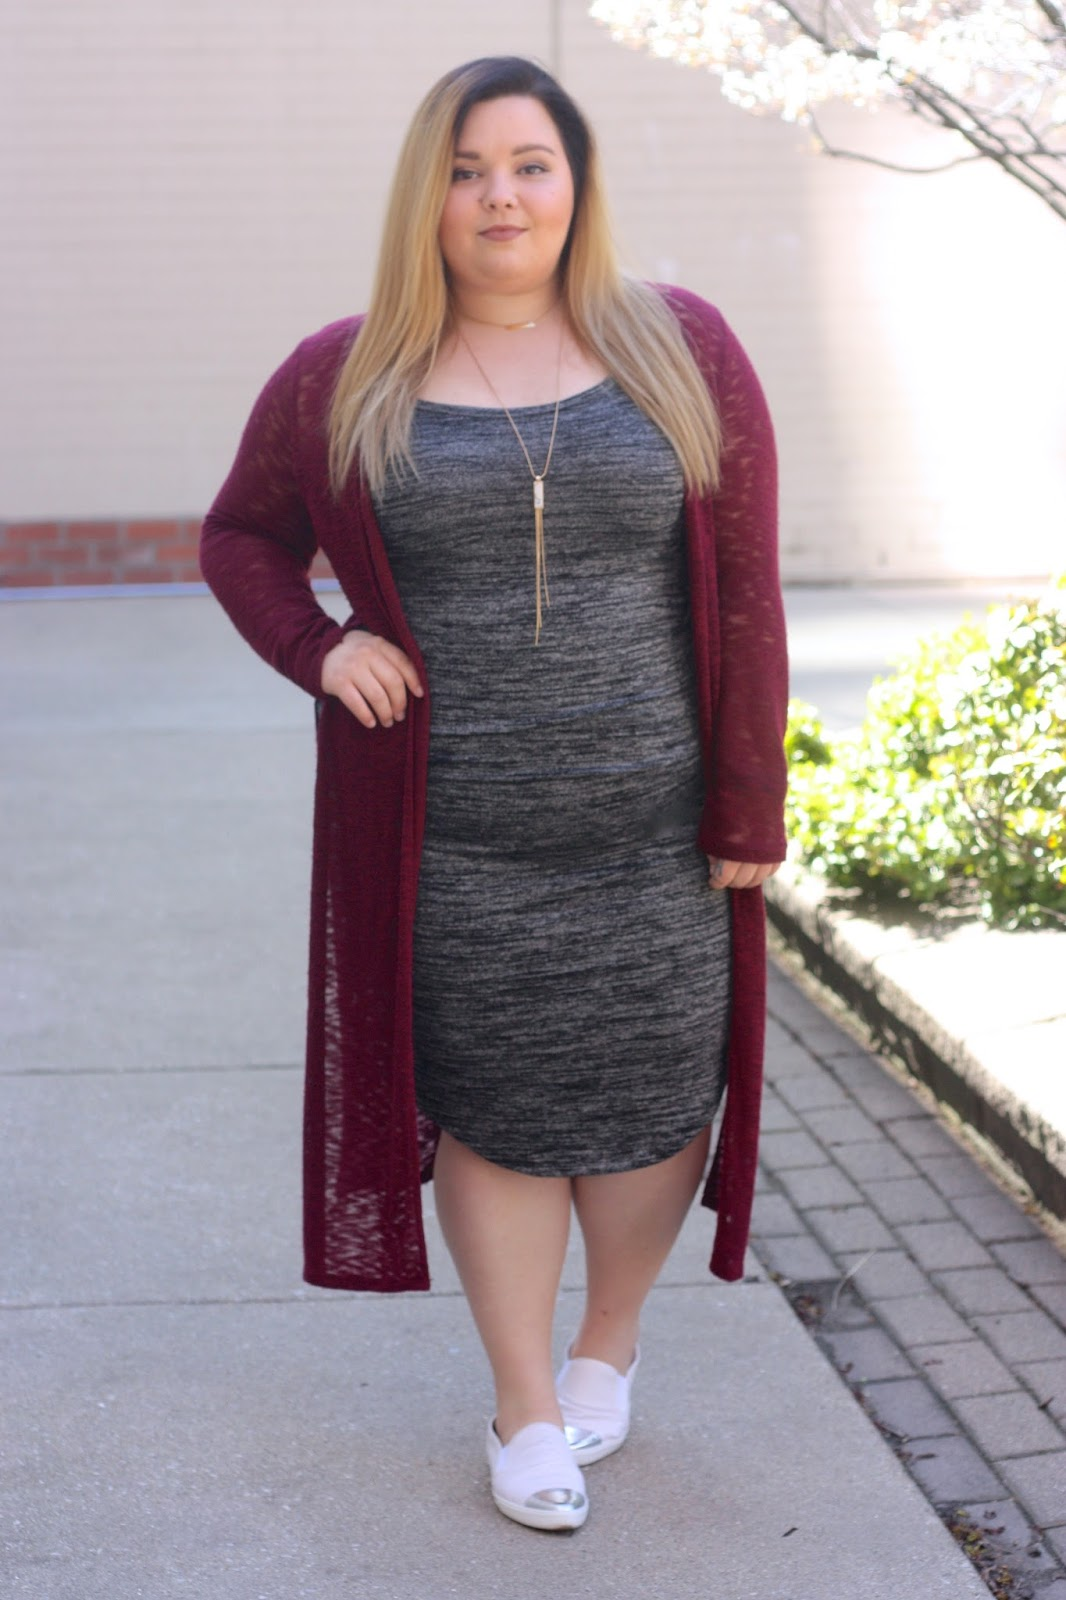 marbled maxi cami dress, maxi bergundy cardigan, plus size, fashion blogger, natalie craig, natalie in the city, plus size fashion blogger, snakeskin sneakers, chrome toe sneakers, marble jewelery